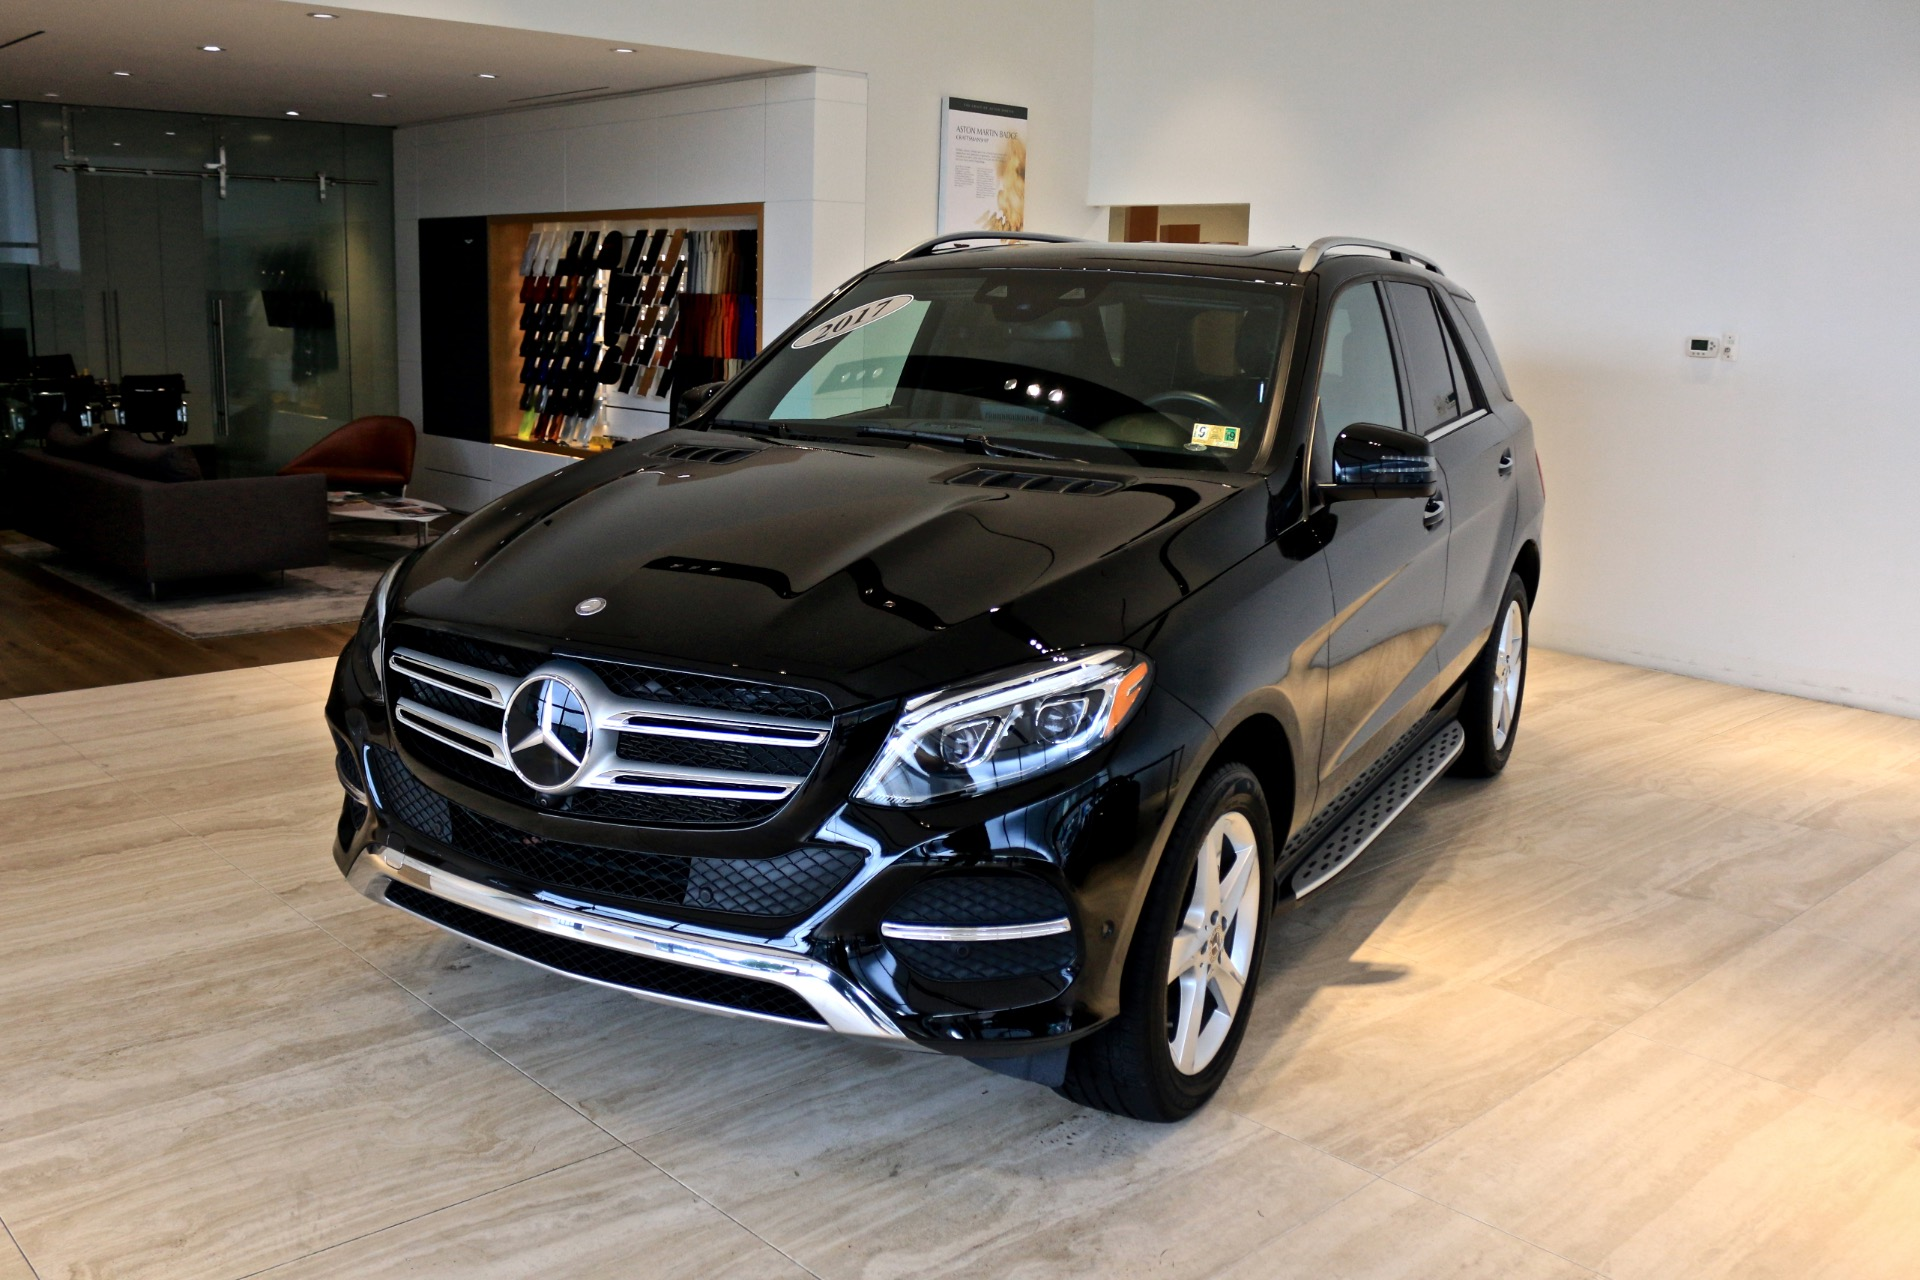 Lease Used Mercedes >> 2017 Mercedes-Benz GLE GLE 350 4MATIC Stock # 9NN00627B for sale near Vienna, VA | VA Mercedes ...